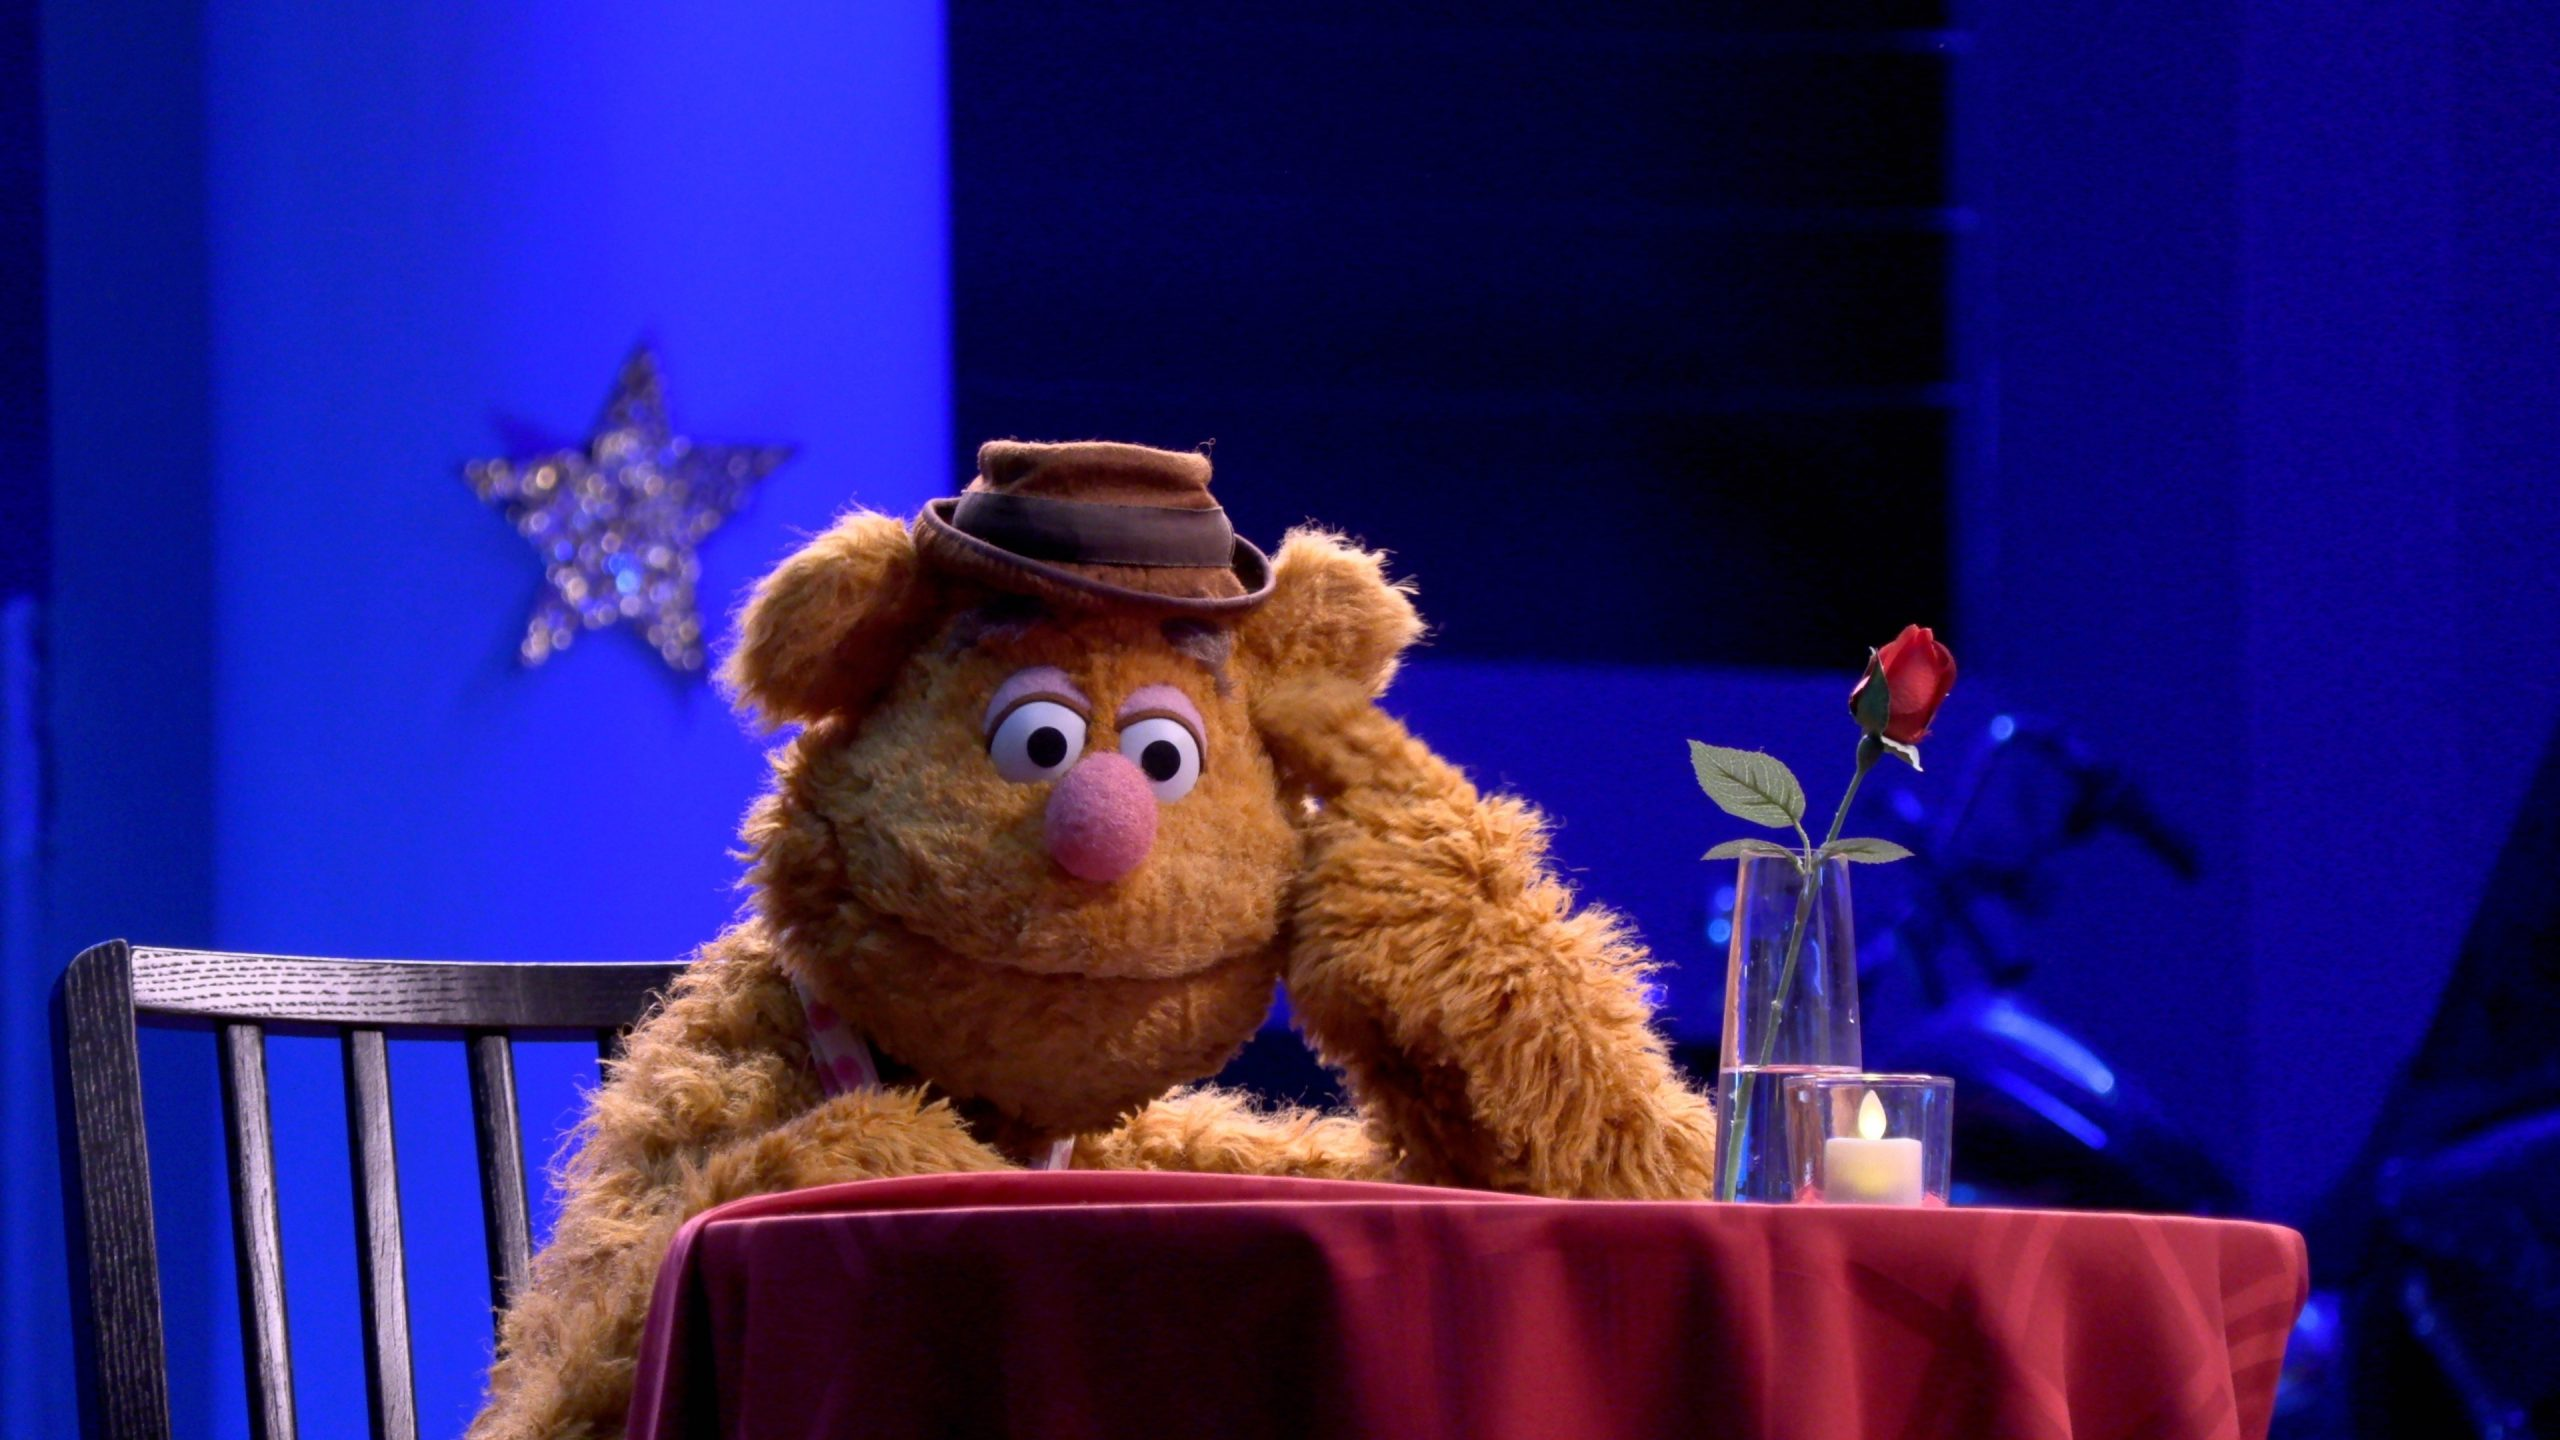 New Movie: Muppets Now Starring Kermit The Frog, Miss Piggy, And The Entire Gang